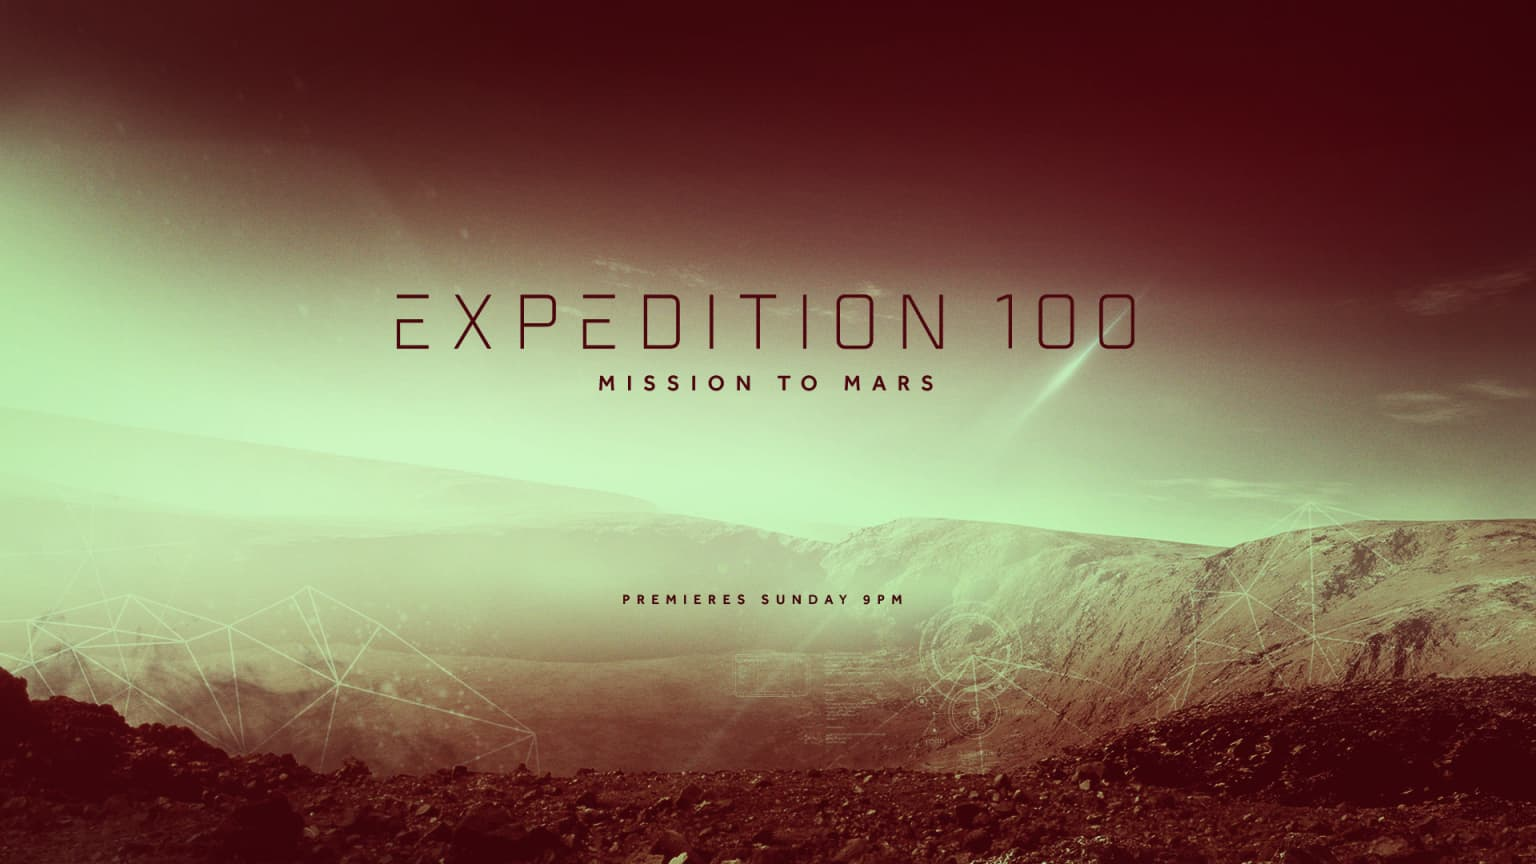 NASA Expedition 100 - Mission To Mars Storyboards